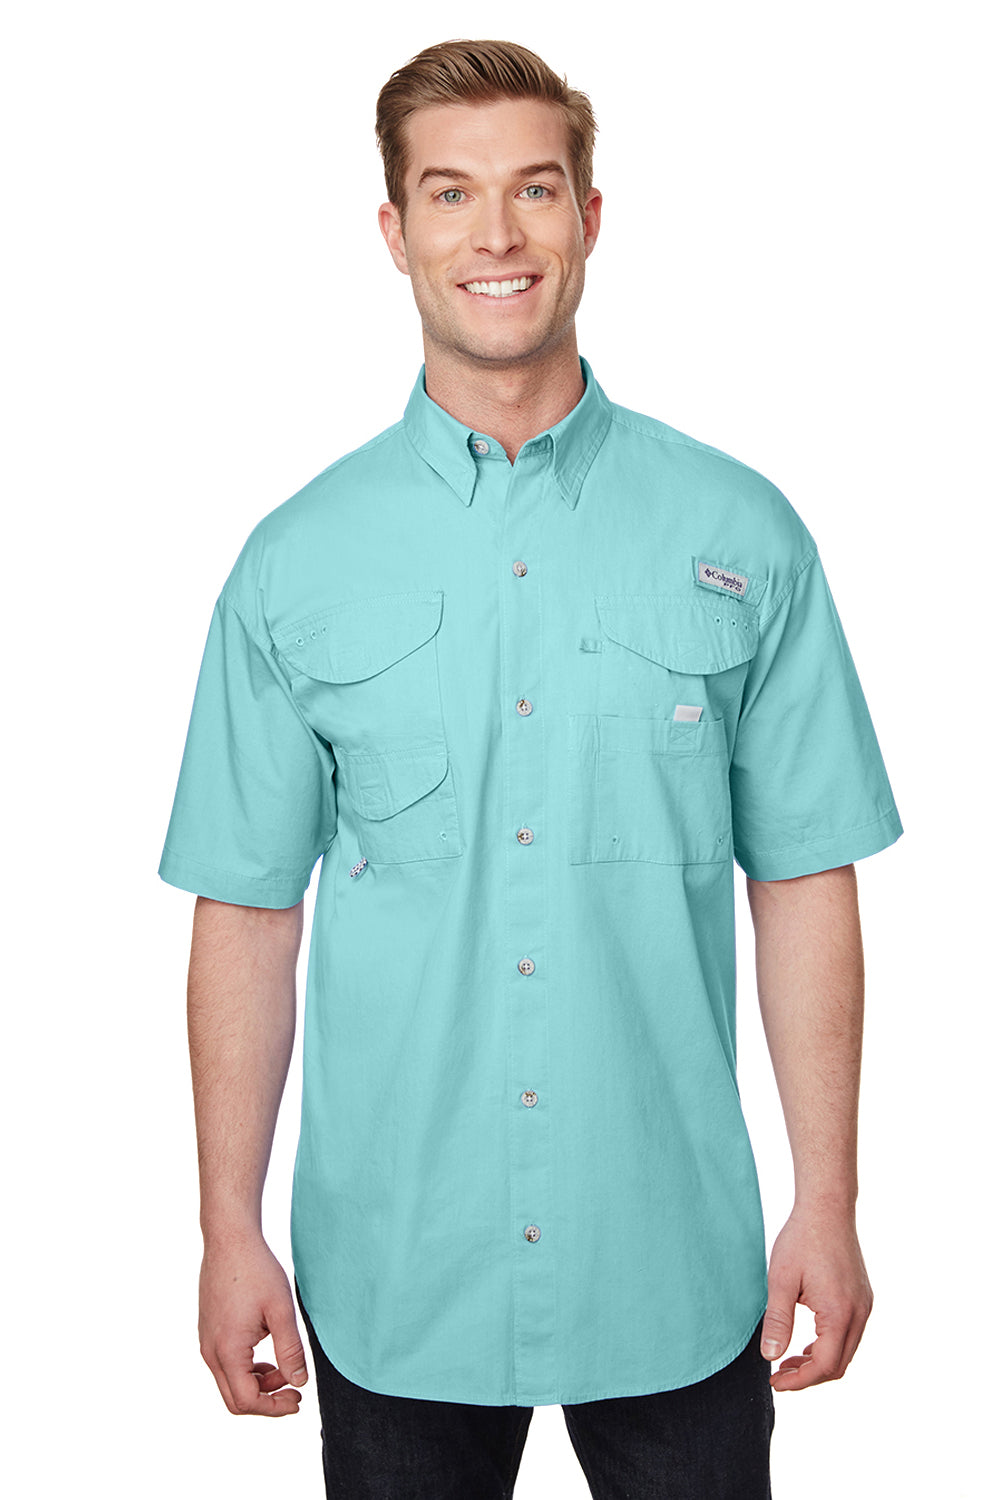 Columbia 7130 Mens Bonehead Short Sleeve Button Down Shirt w/ Double Pockets Gulf Stream Green Front